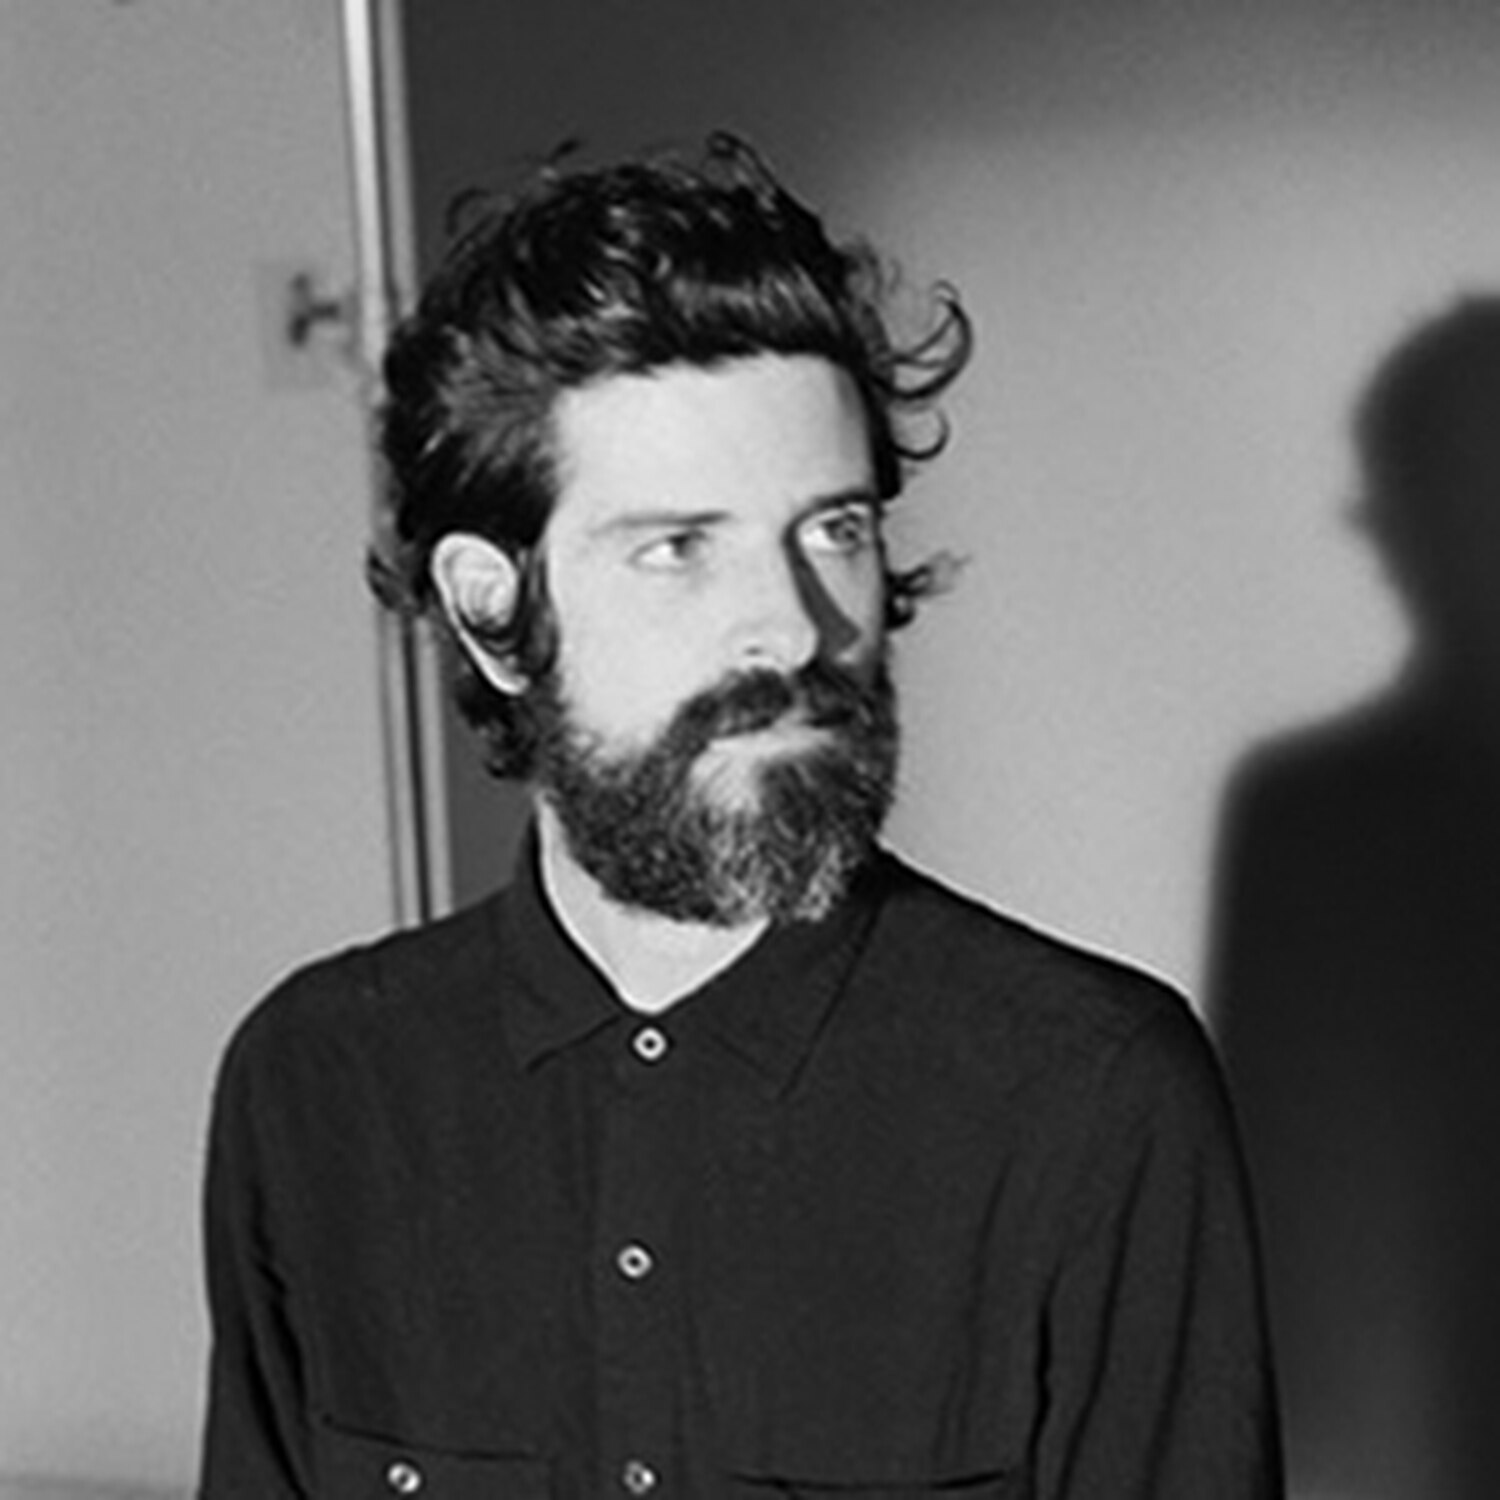 Courtesy Devendra Banhart